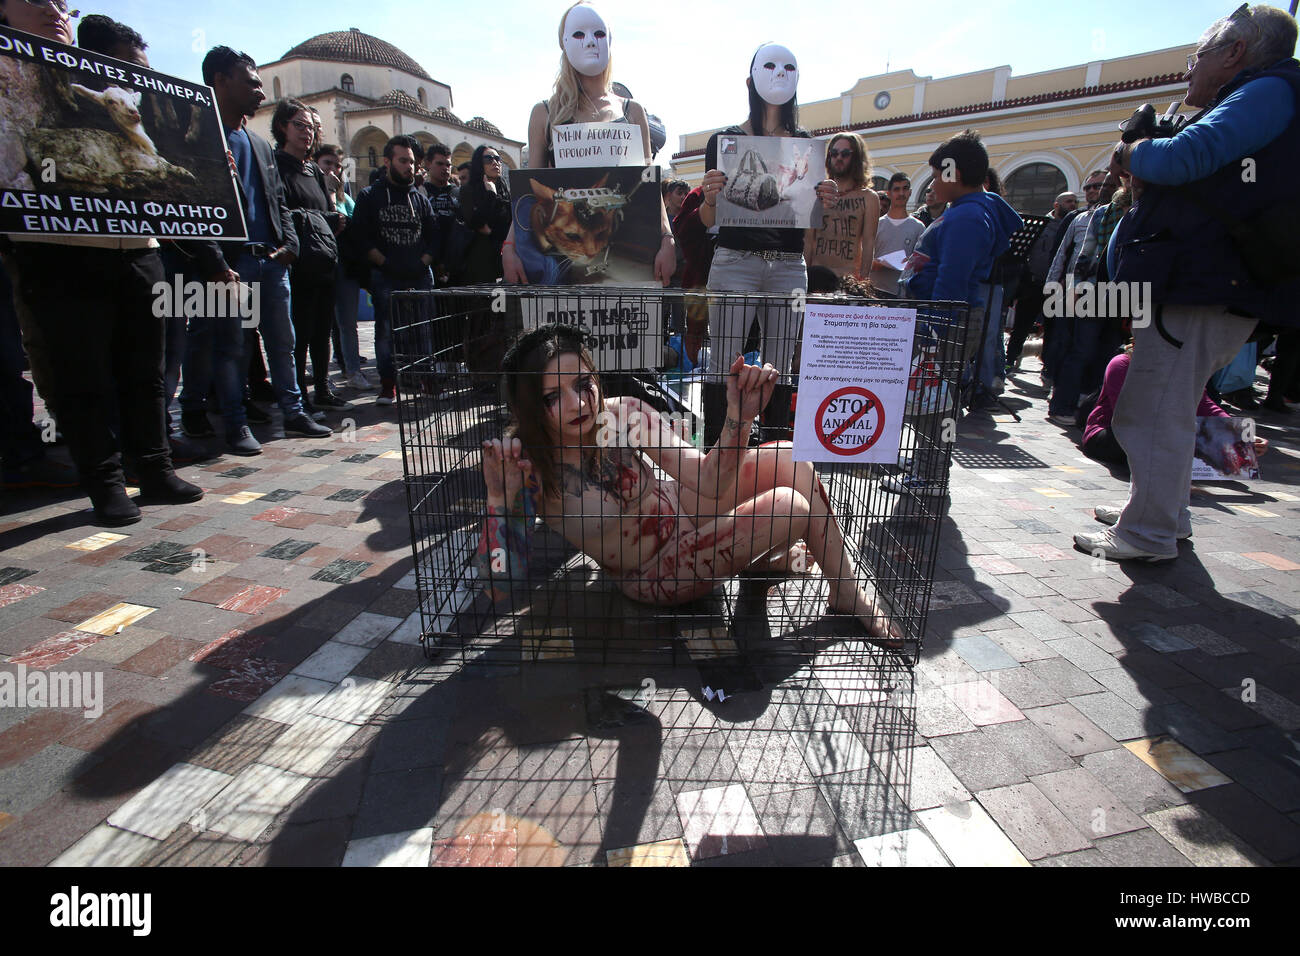 Athens, Greece. 19th Mar., 2017. Activists staged a protest against the mistreatment and abuse of animals in Athens, - Stock Image